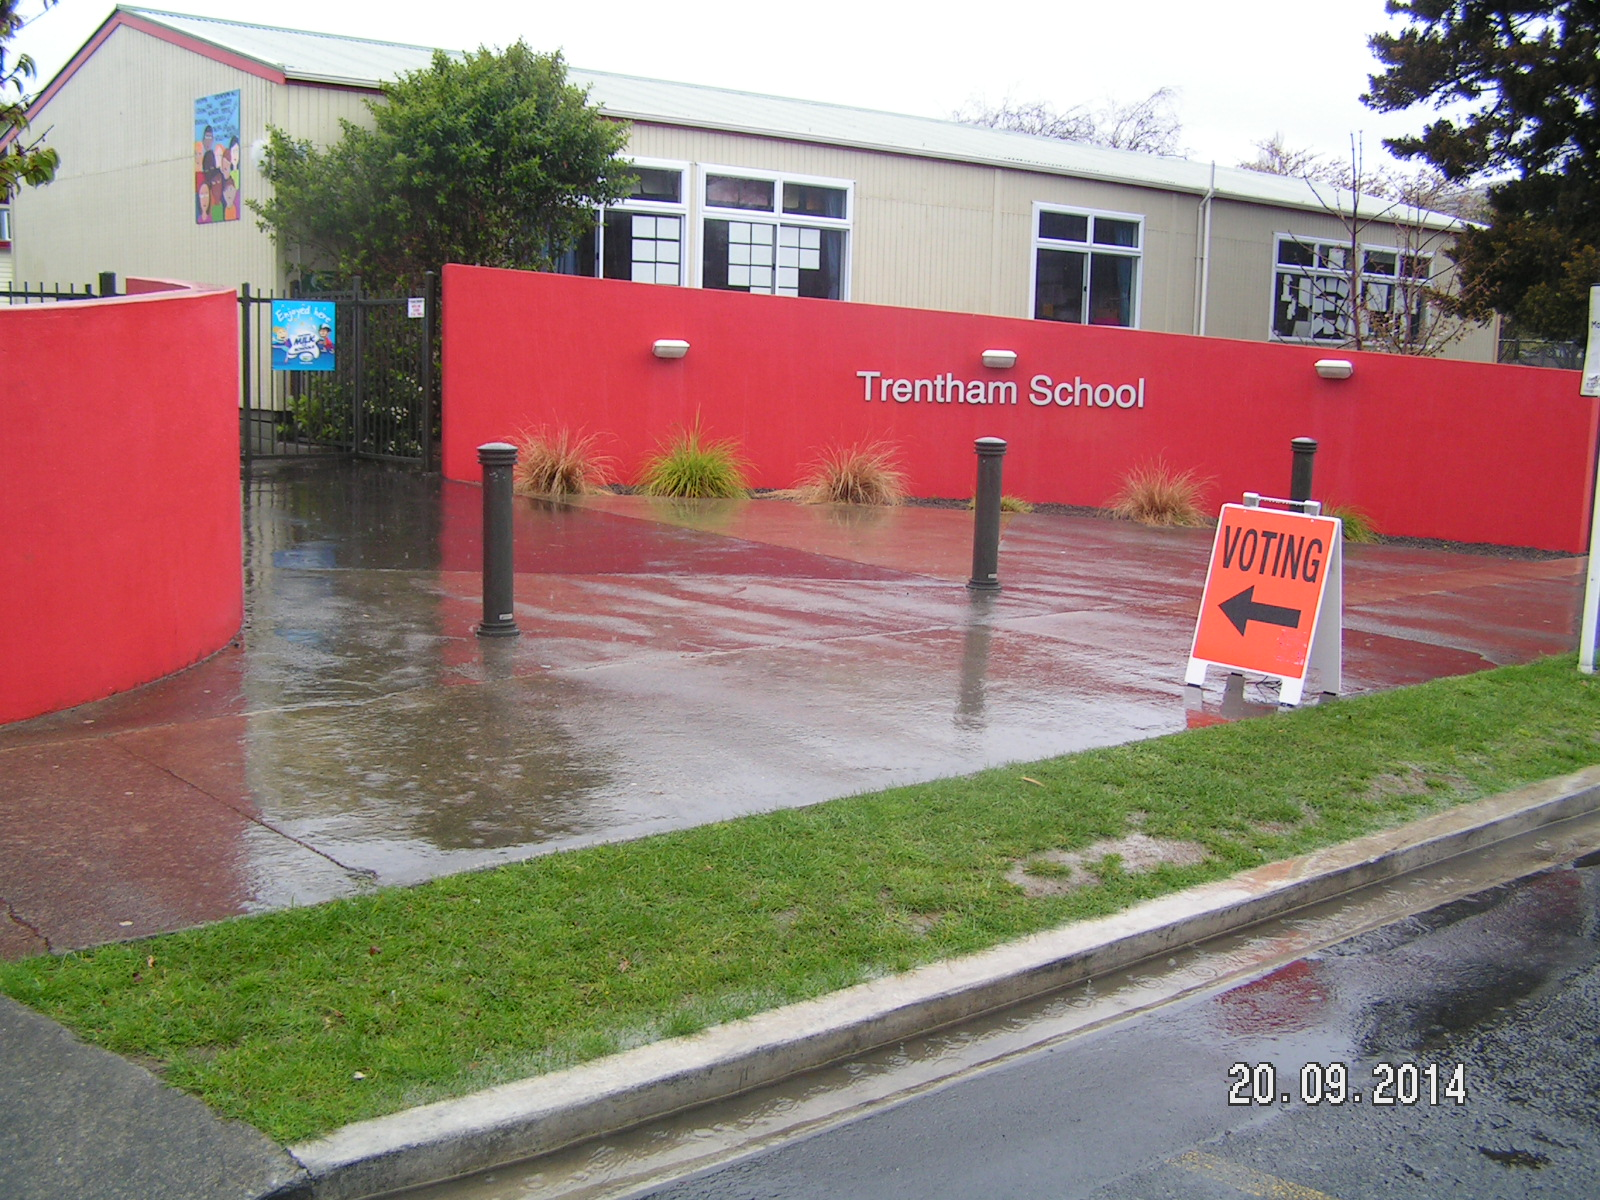 Trentham School - 20 September - election Day - polling station